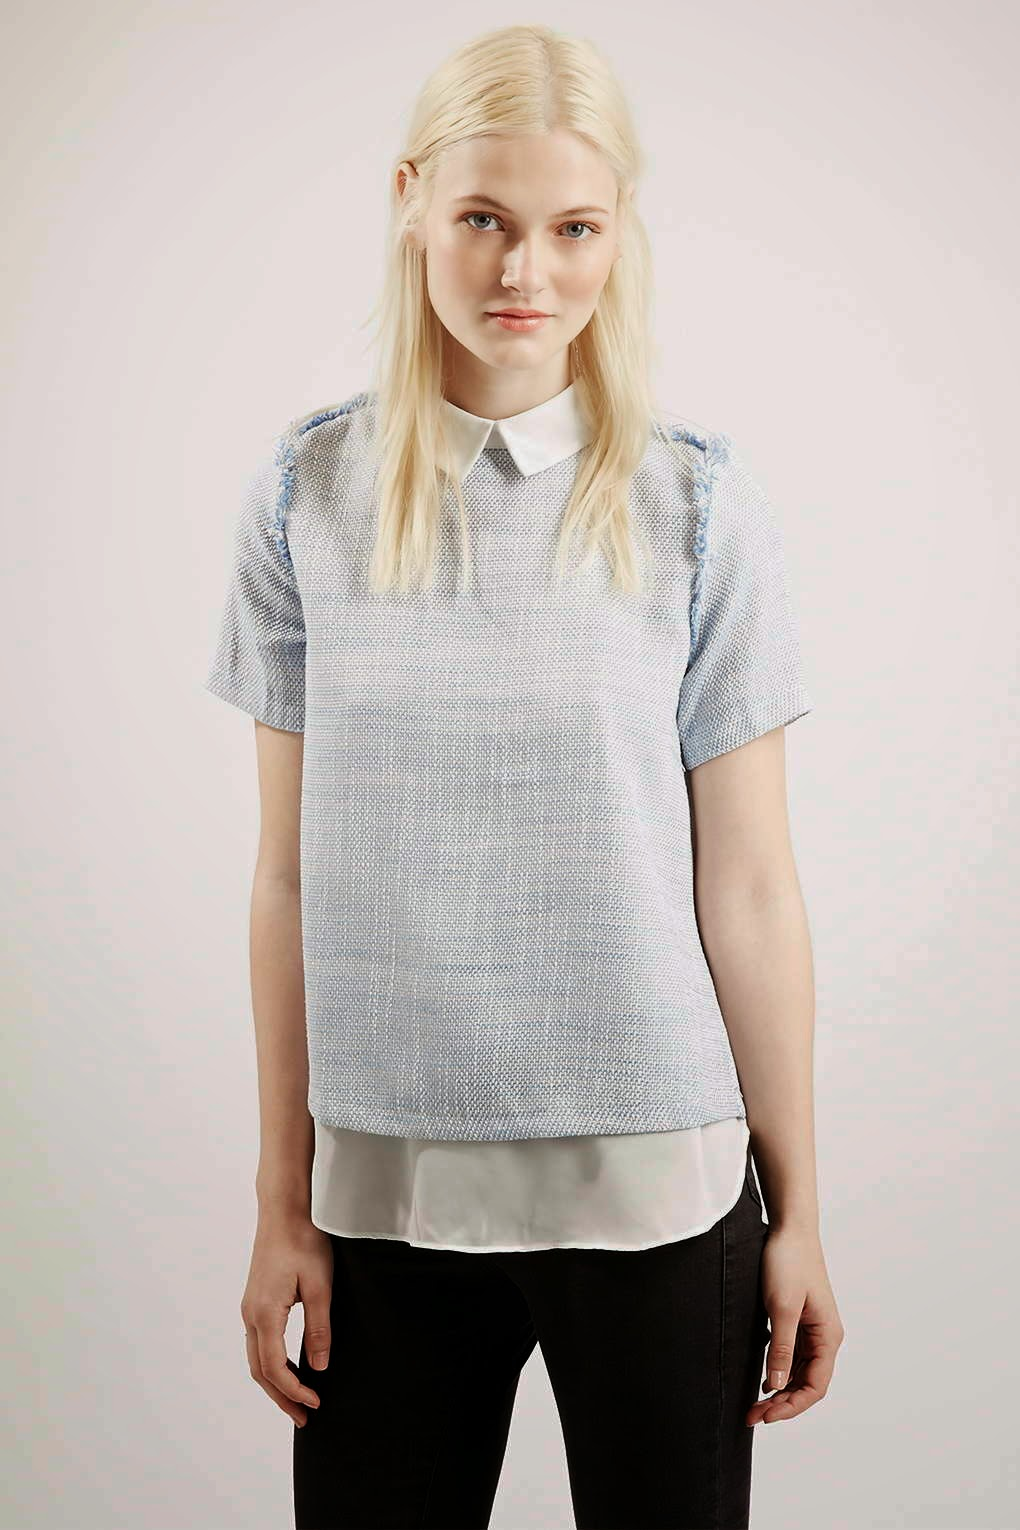 light blue sister jane top, pale blue blouse with white collar,